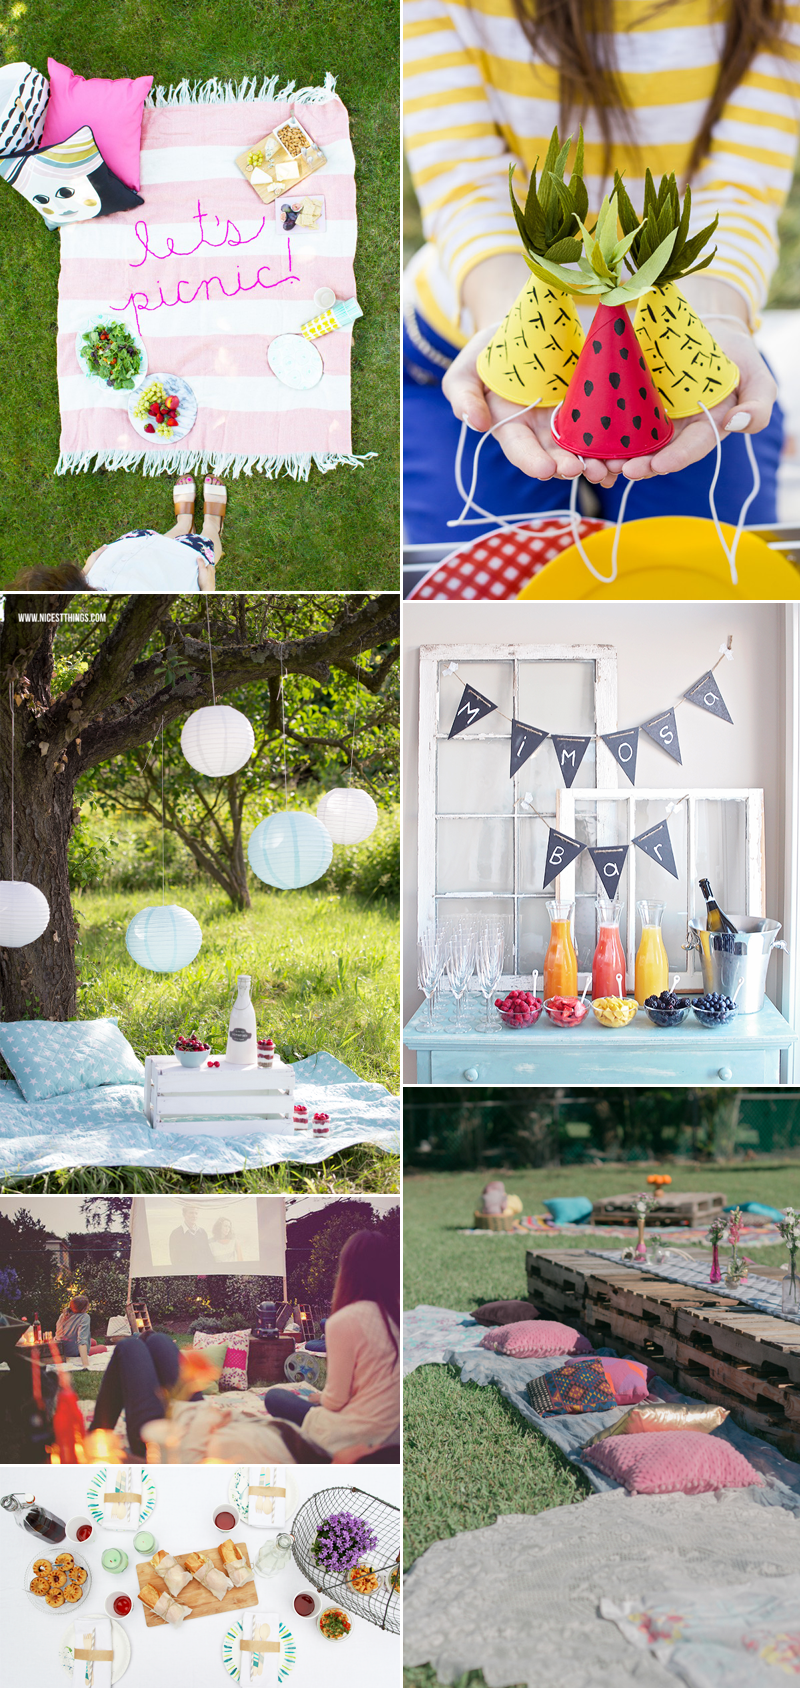 Picknick-Inspirationen | we love handmade